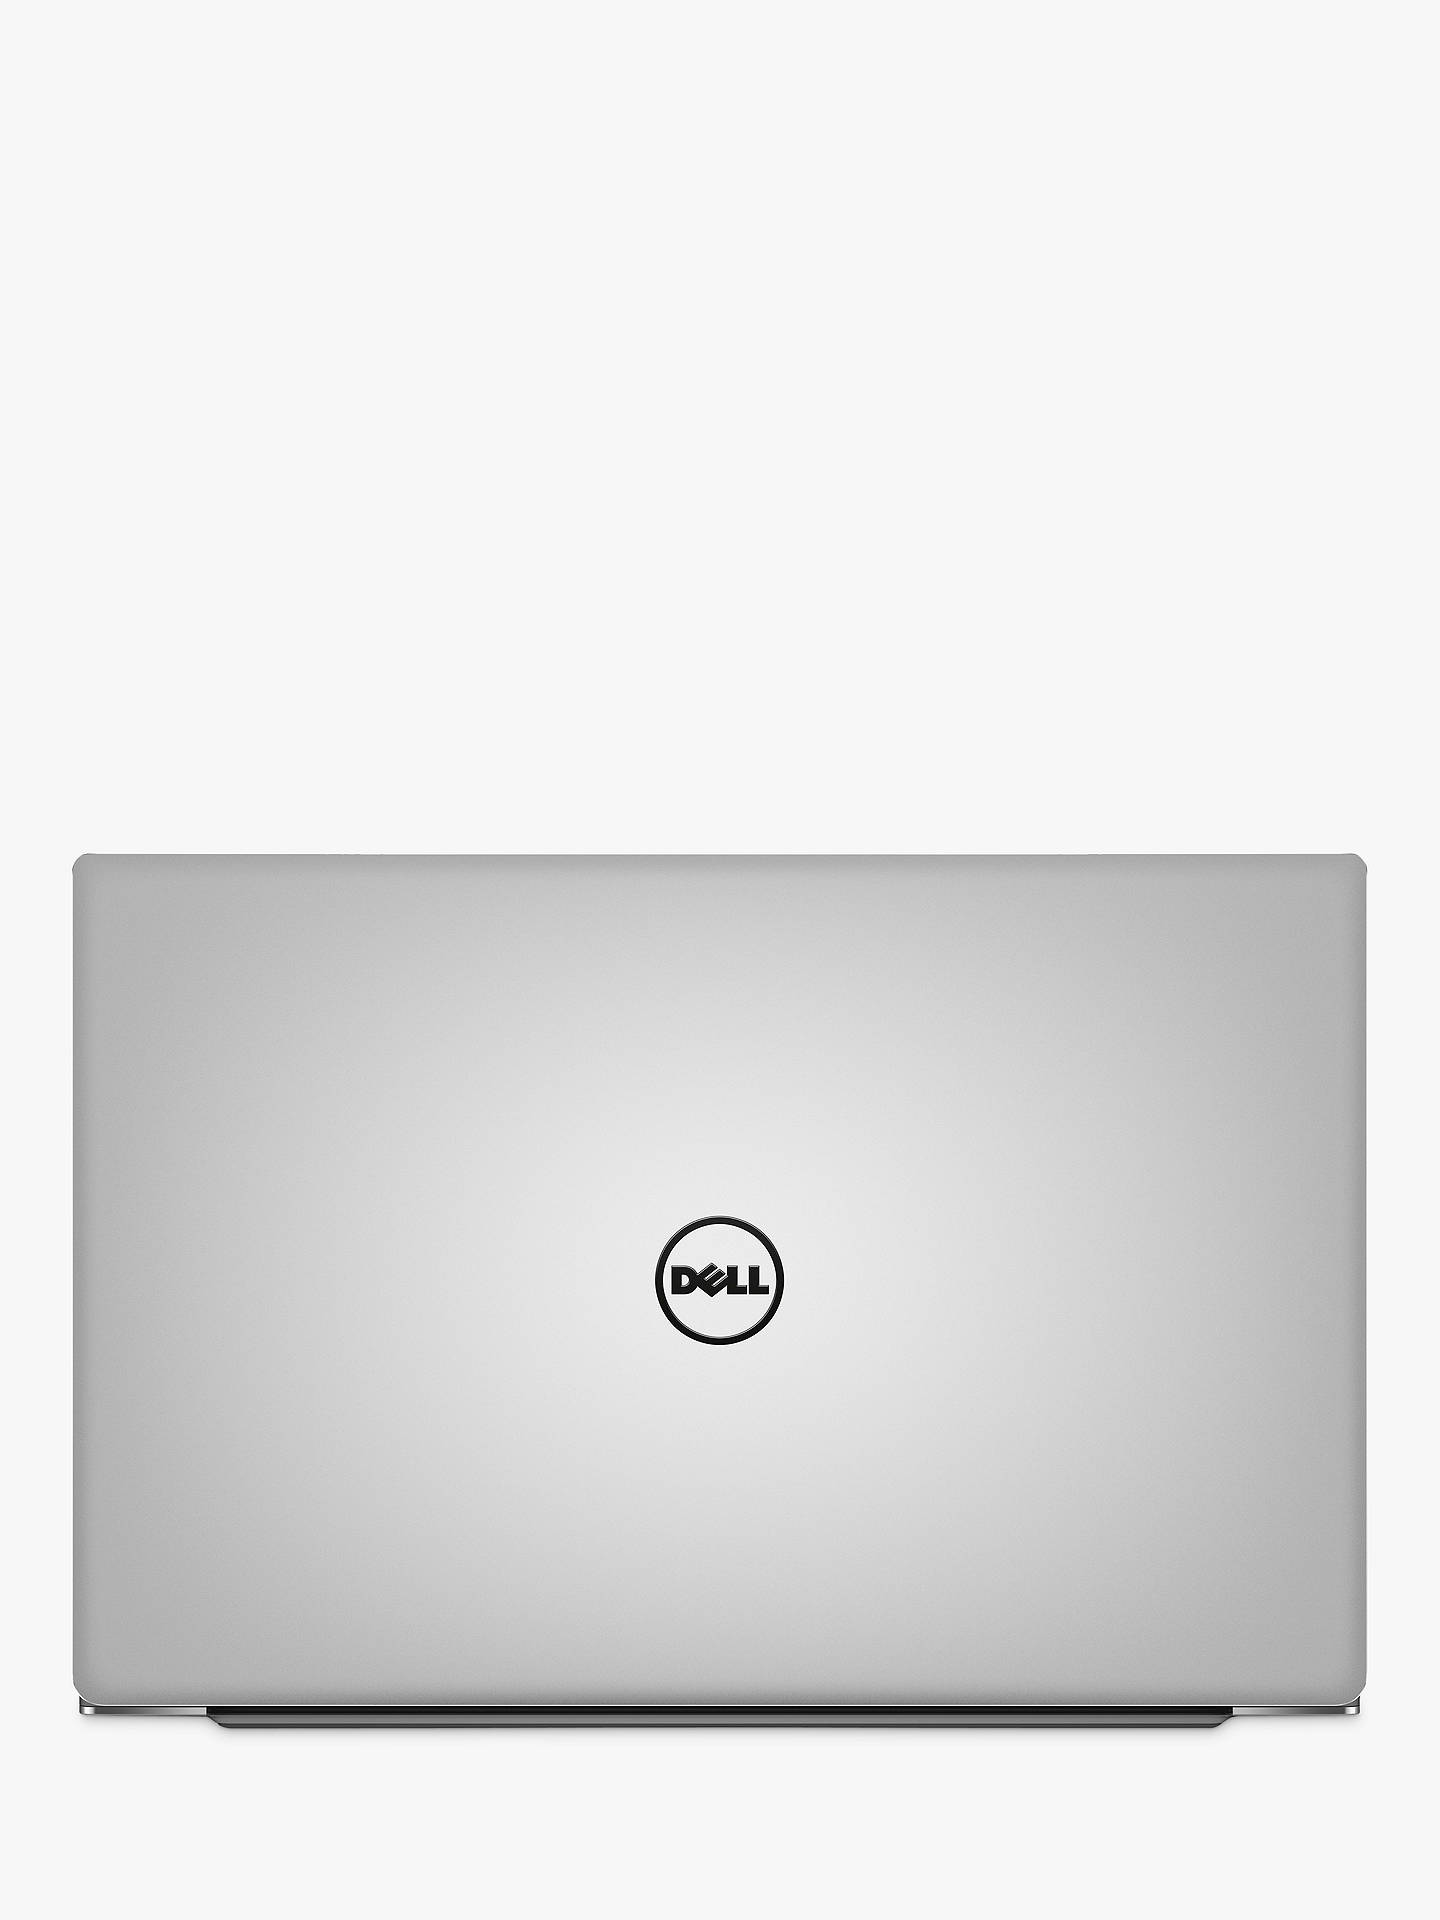 dell xps 13 9343 drivers uk